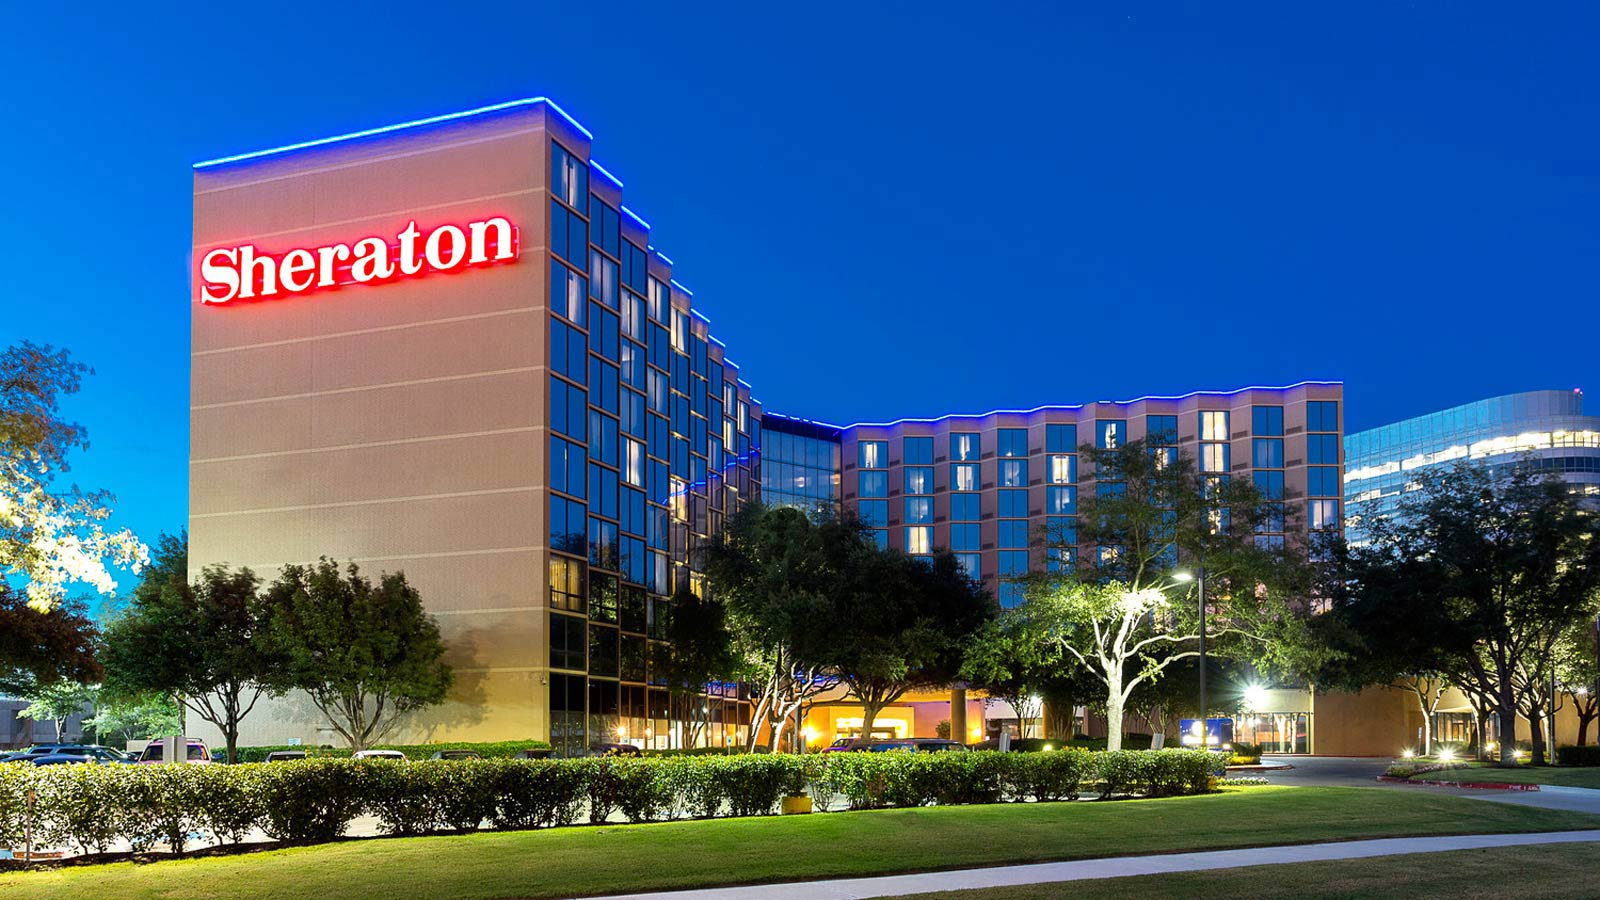 https://www.hotelsbyday.com/_data/default-hotel_image/0/2644/sheraton-houston-brookhollow-exterior-at-dusk.jpg